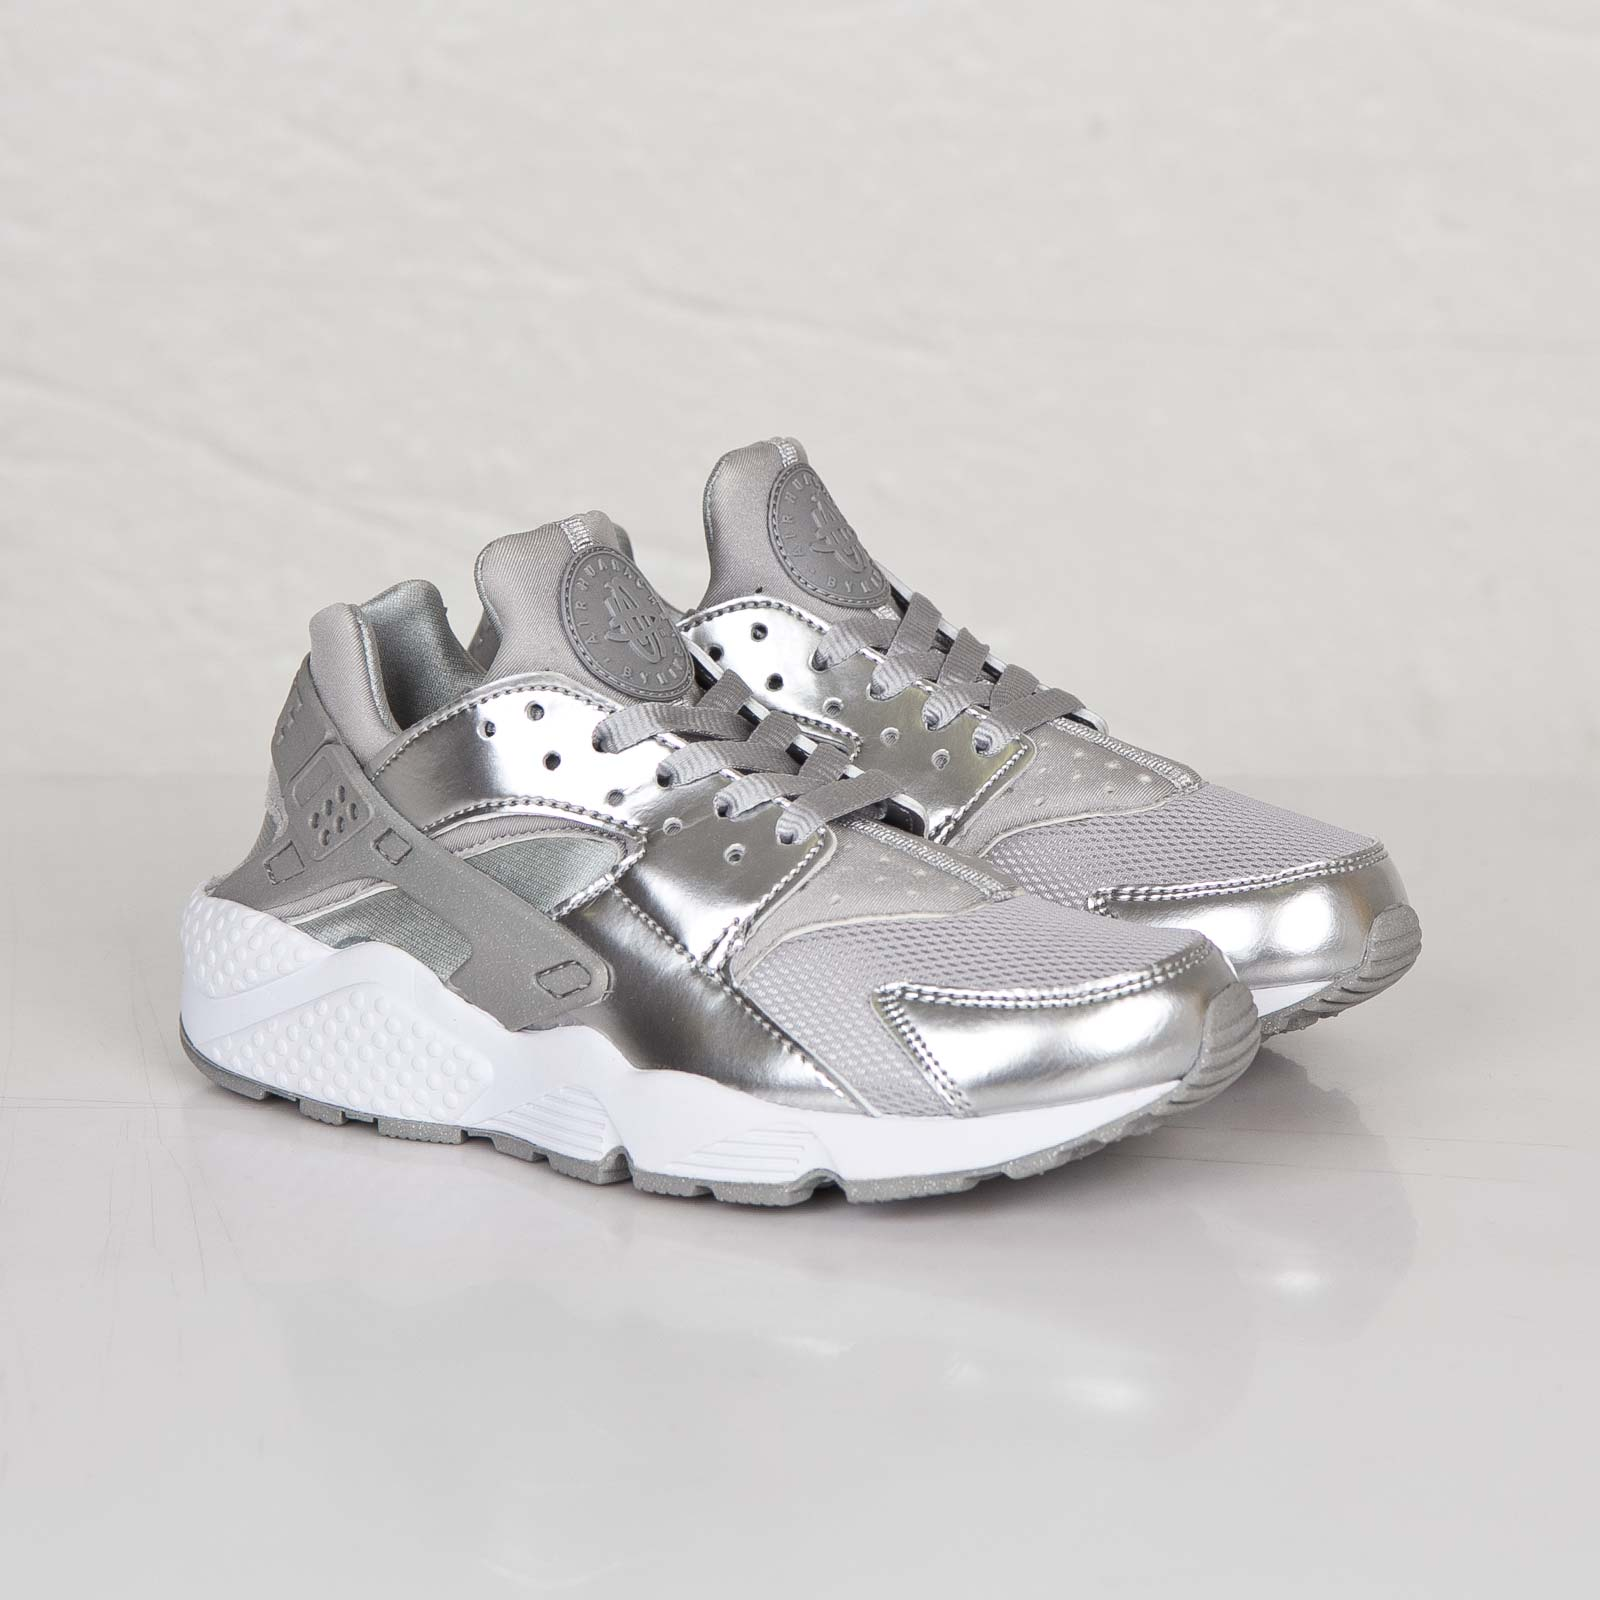 info for 82d47 c6ff5 ... metallic silver 5 le discount code for nike wmns air huarache prm c2c5a  ae743 ...